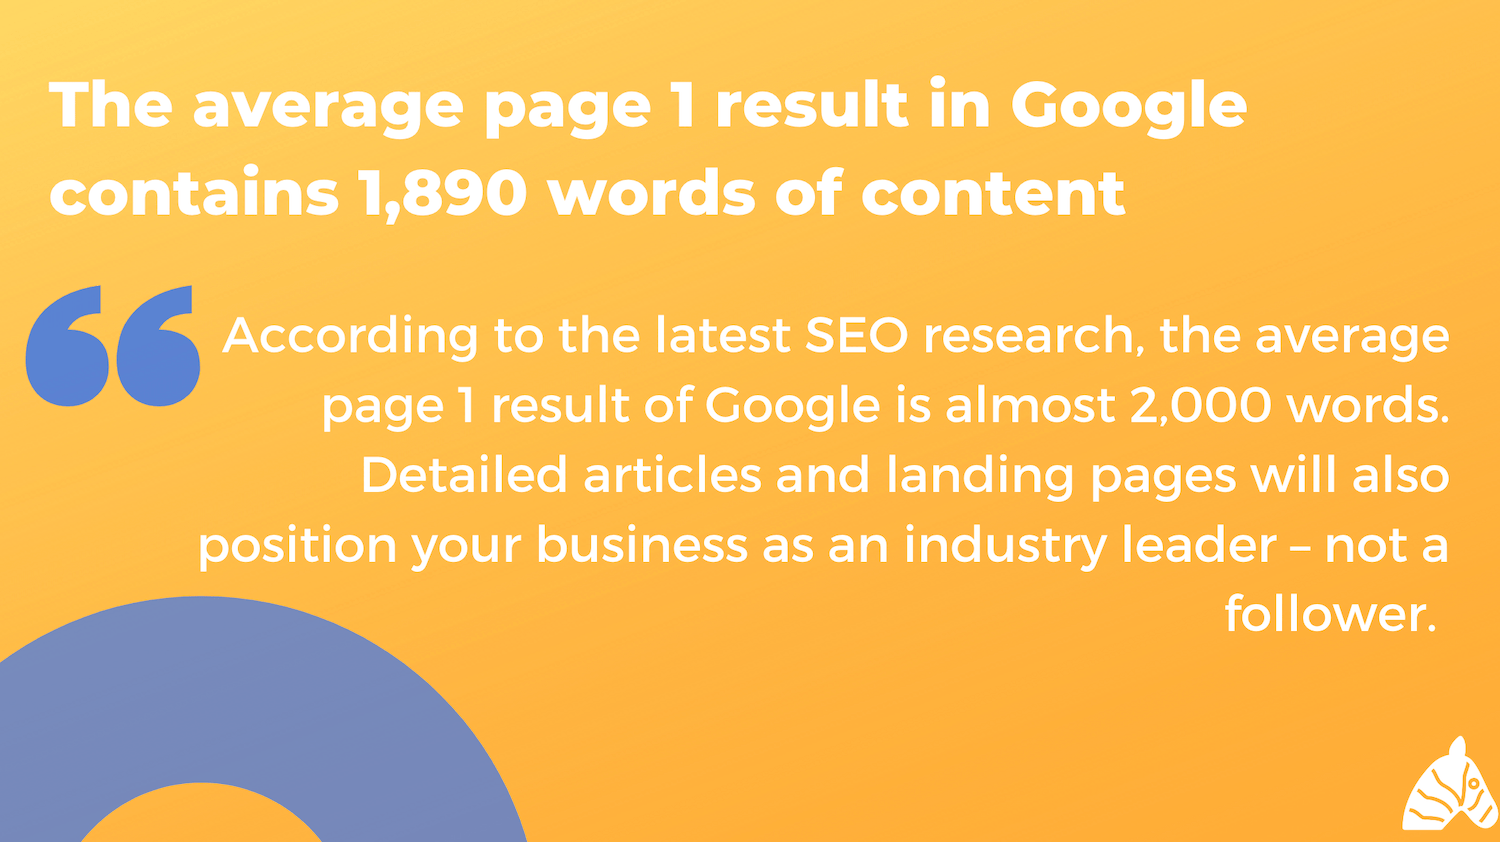 average page 1 google result word count in 2019